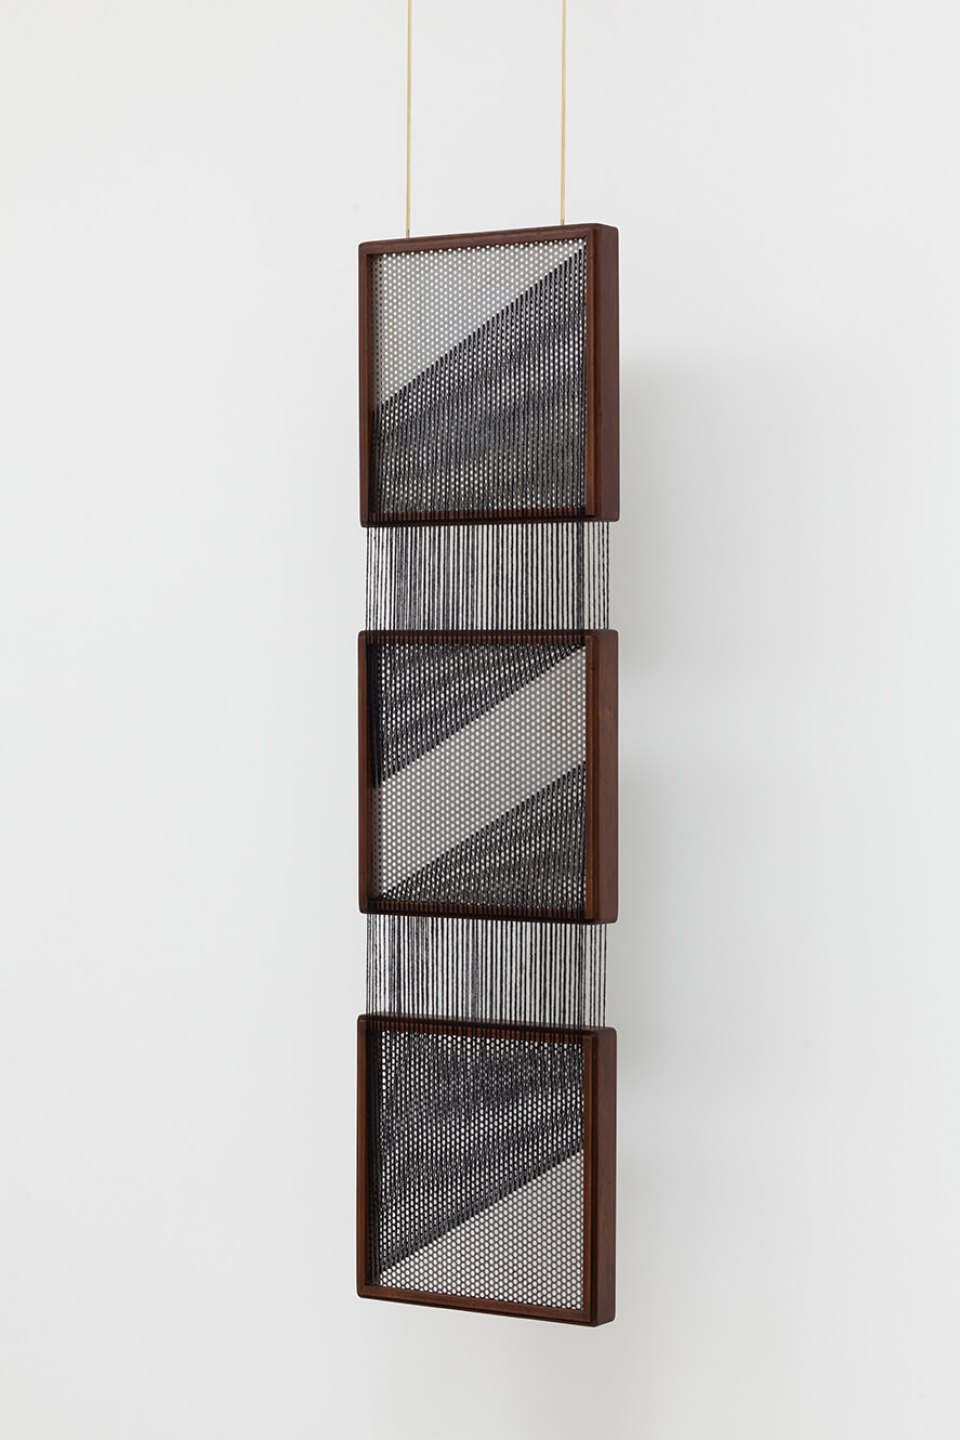 Paloma Bosquê, <em>On provisory interaction</em>, 2016, coffee sieve, wool and brass rods, 112 × 30.5 × 4 cm - Mendes Wood DM